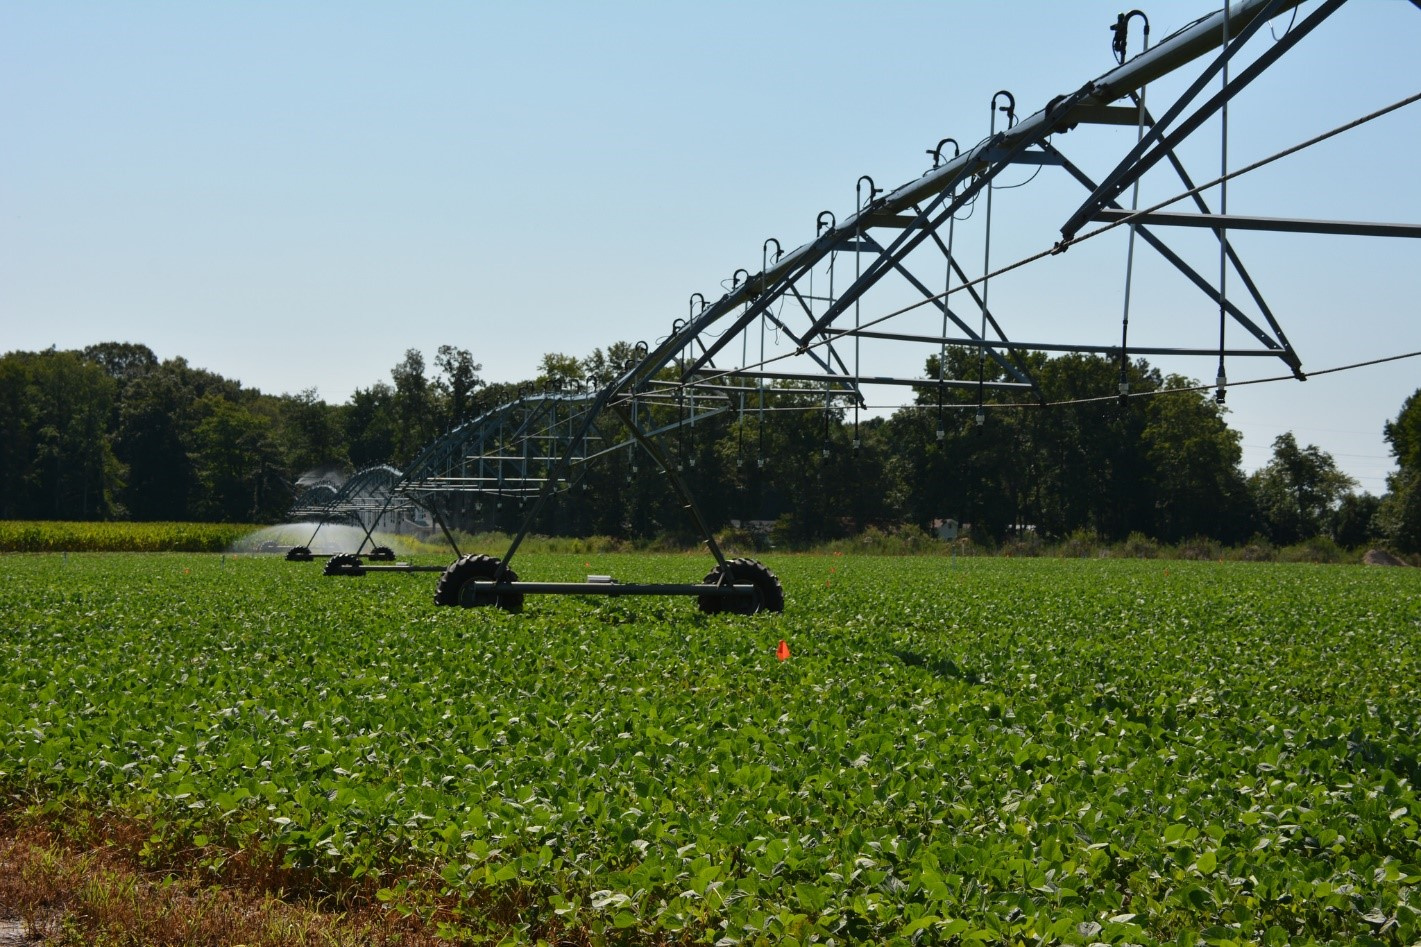 Exemple d'irrigation d'un champ agricole. Photo : Delaware Cooperative Extension